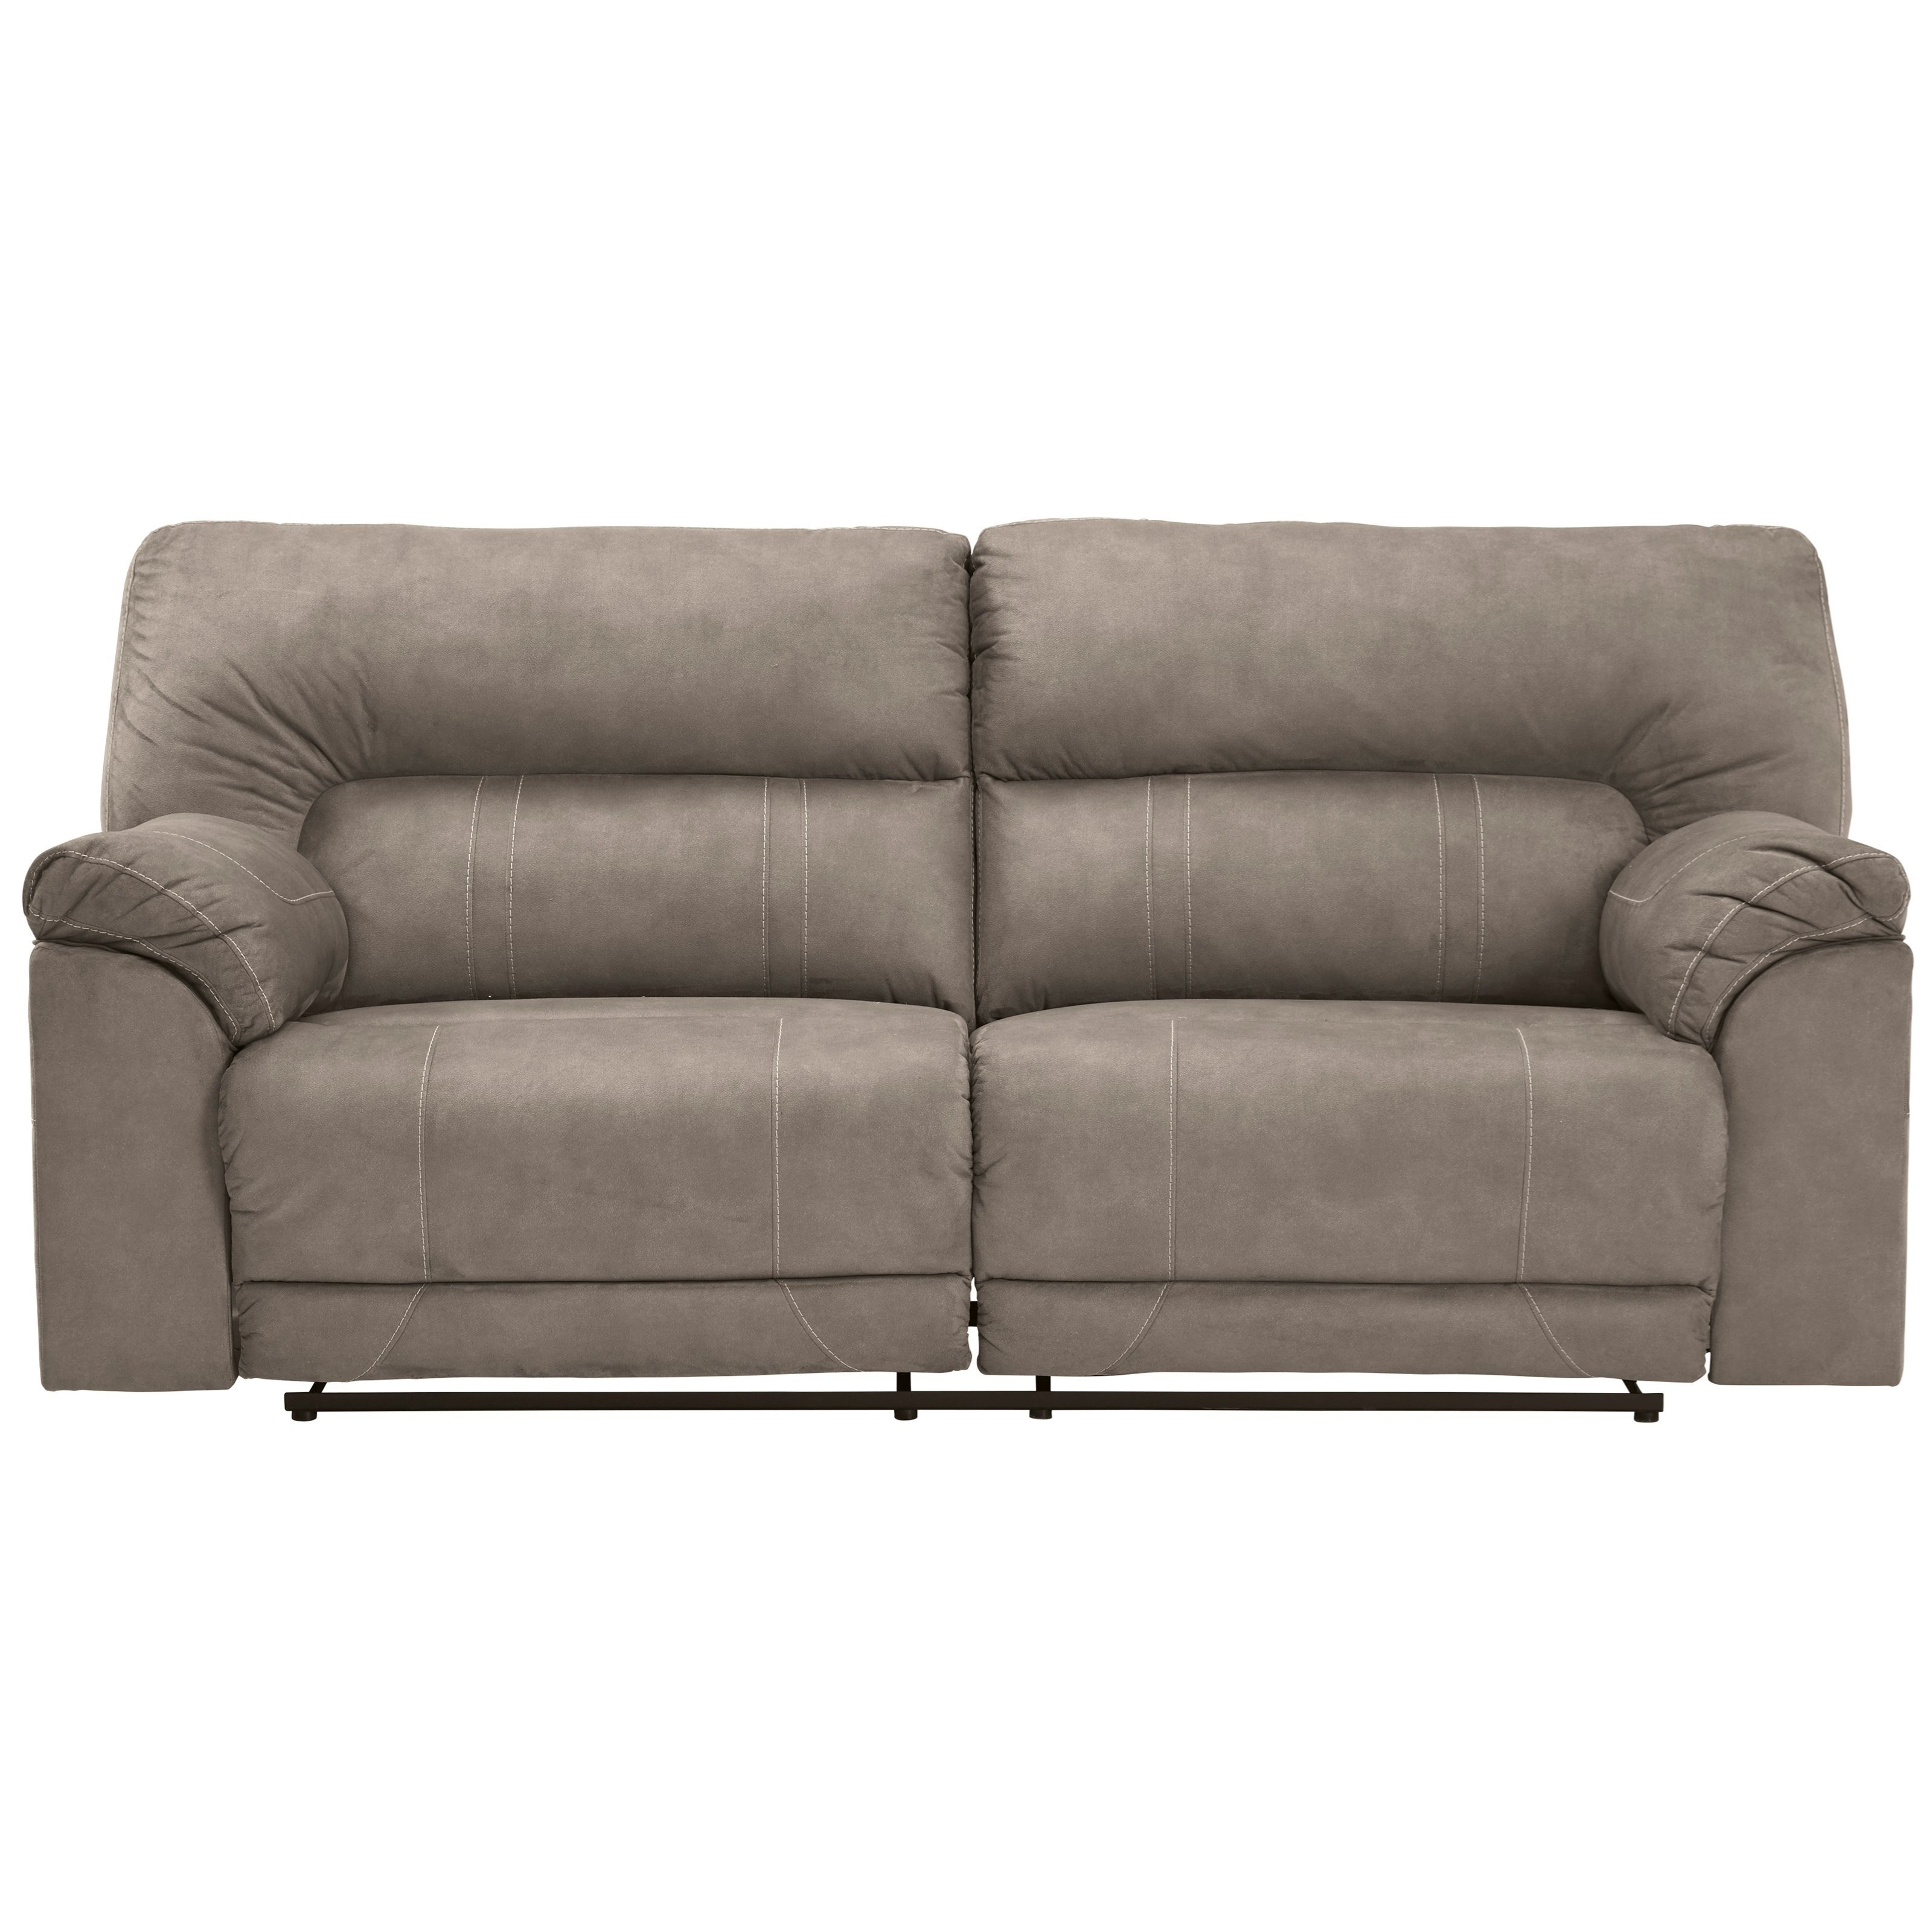 Coverton Two-Seat Reclining Power Sofa by Trendz at Ruby Gordon Home